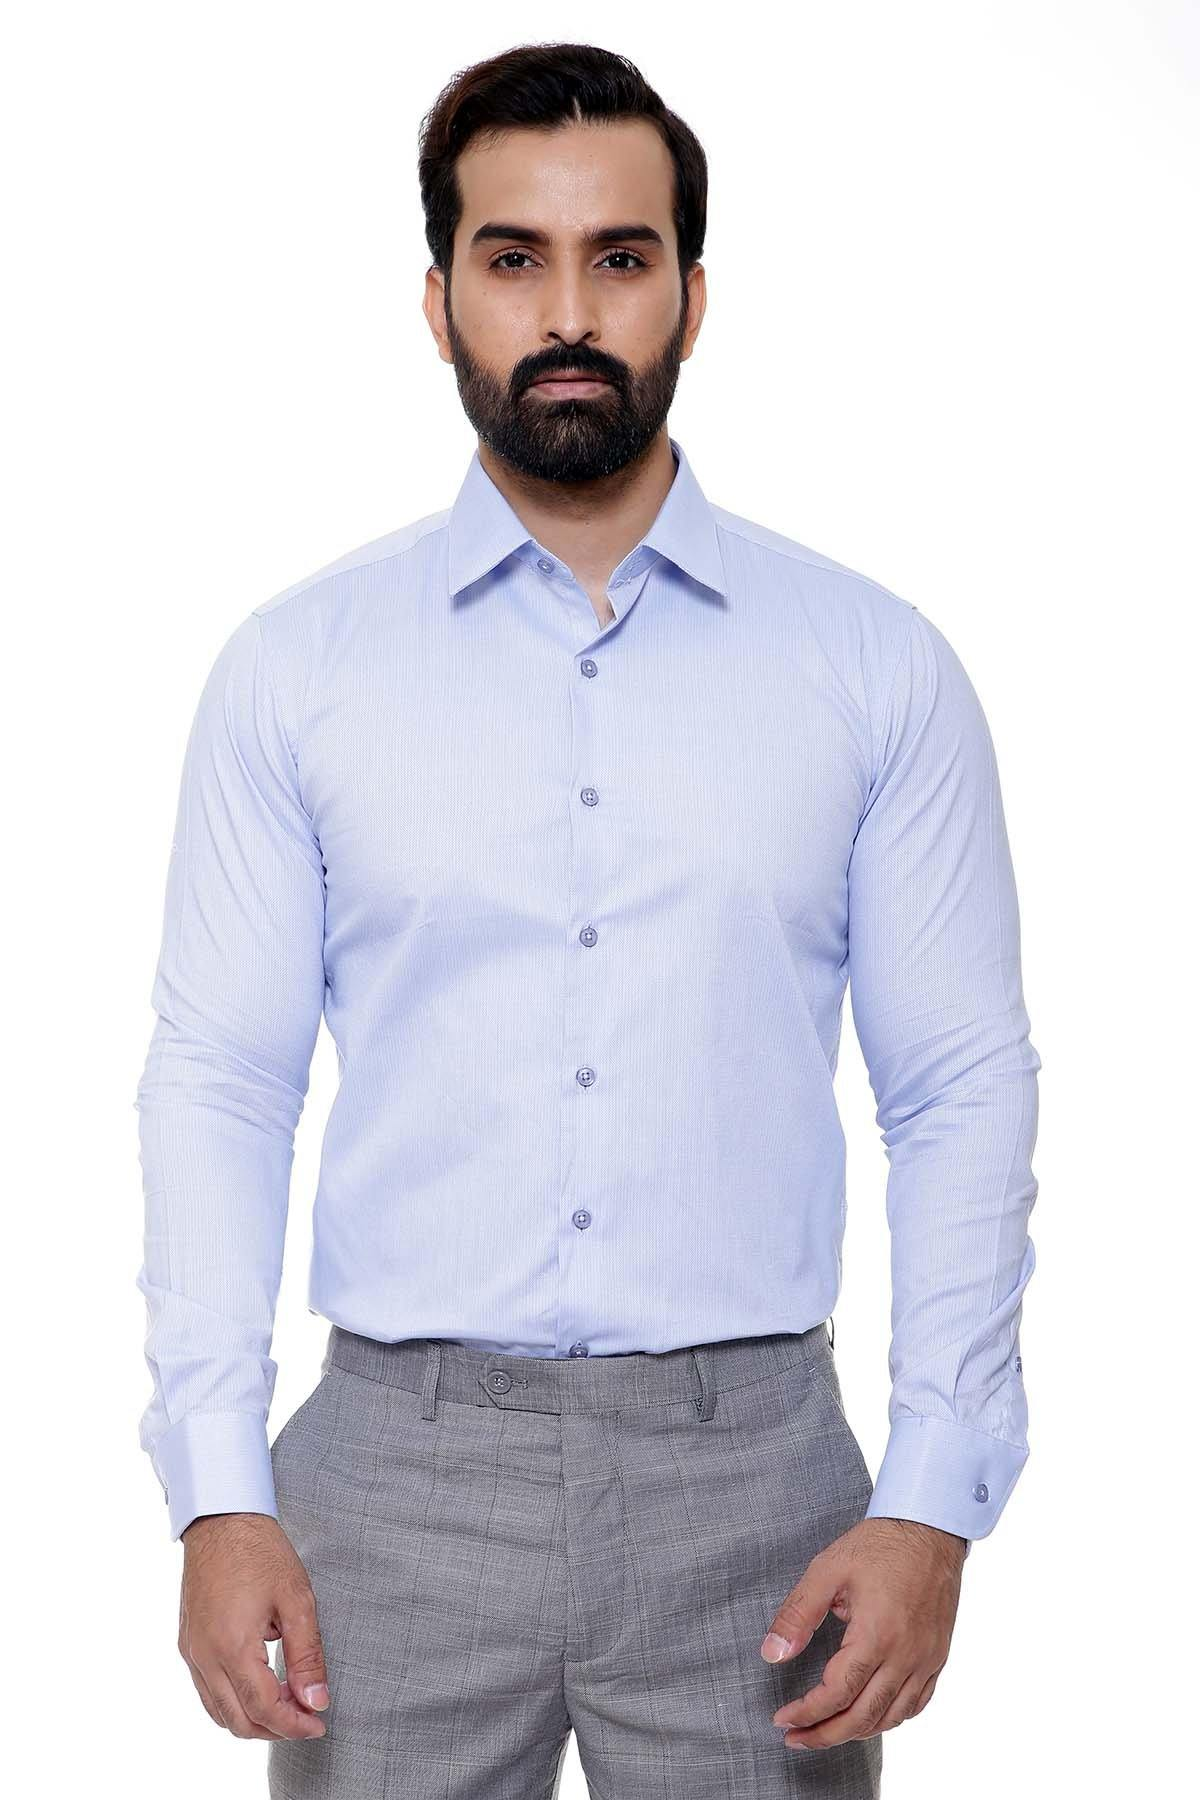 DRESS SHIRT FULL COLLAR LIGHT SKY - Charcoal - SHIRTS -